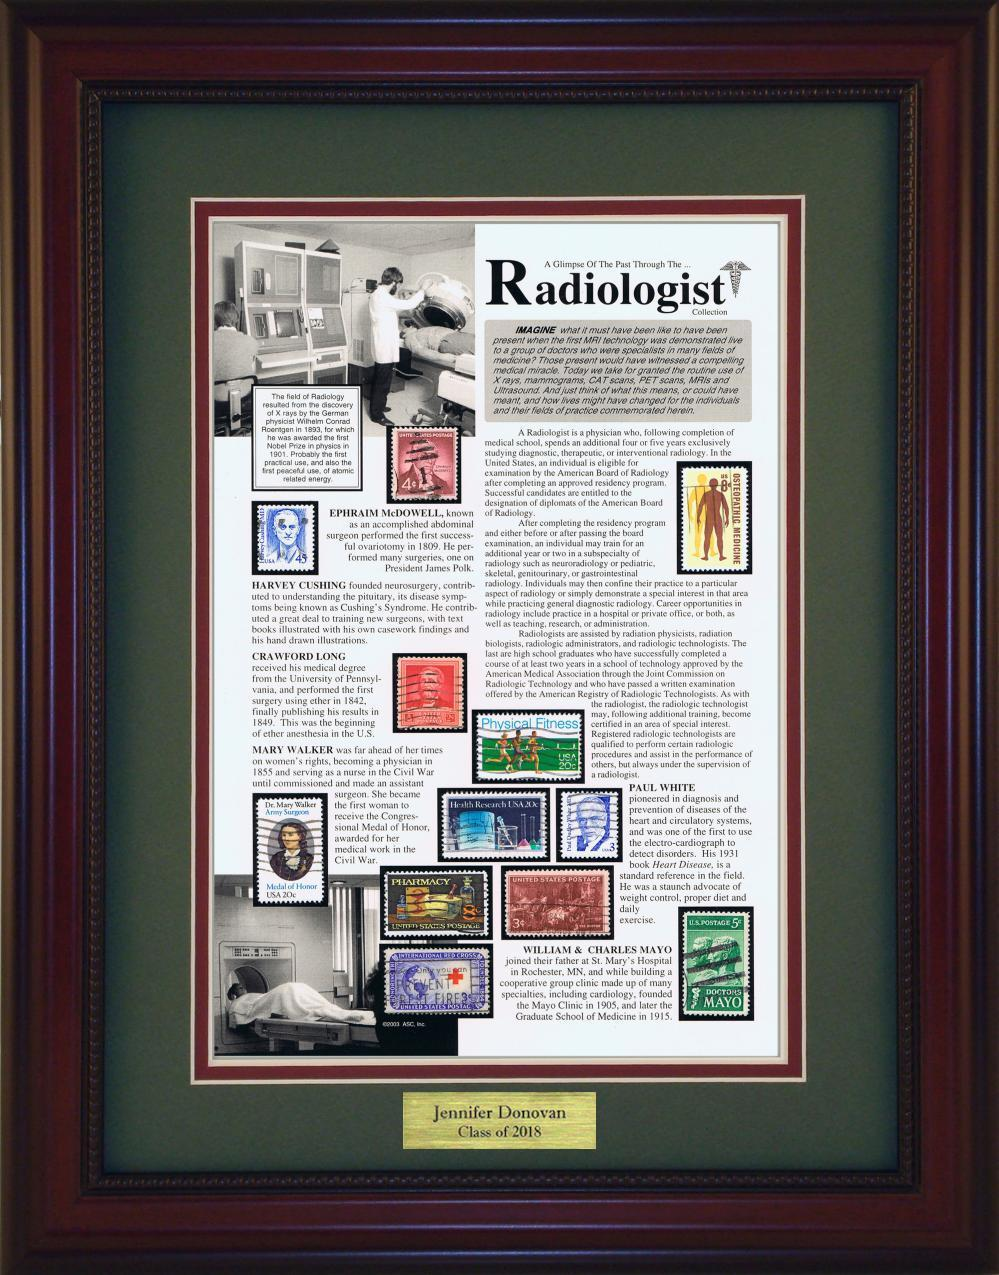 Radiologist - Personalized Unique Framed Gift